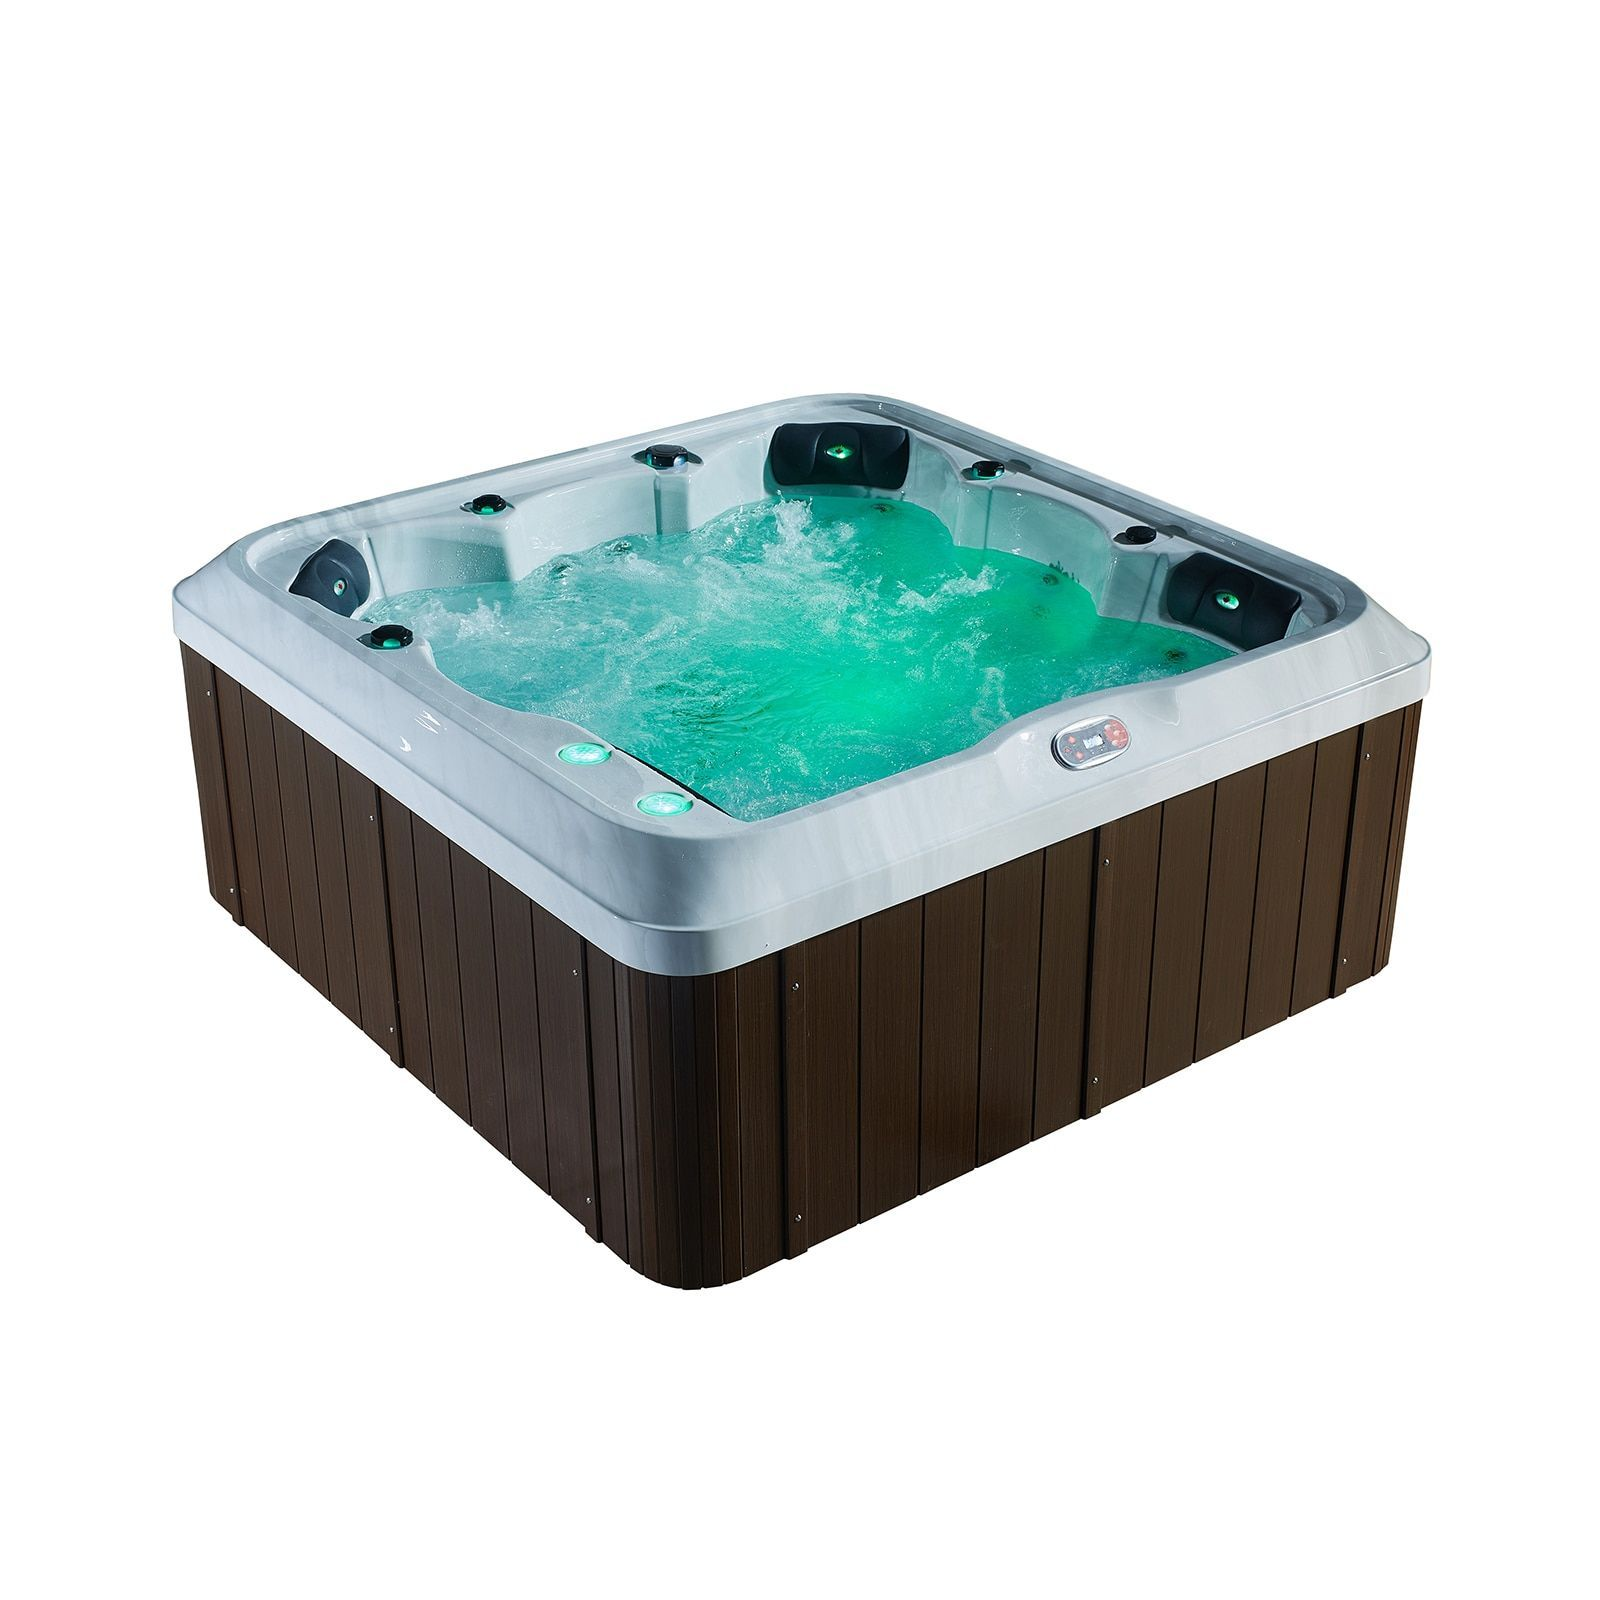 Canadian Spa Company Montreal SE 6-Person 25 Jet Hot Tub | Patio ...